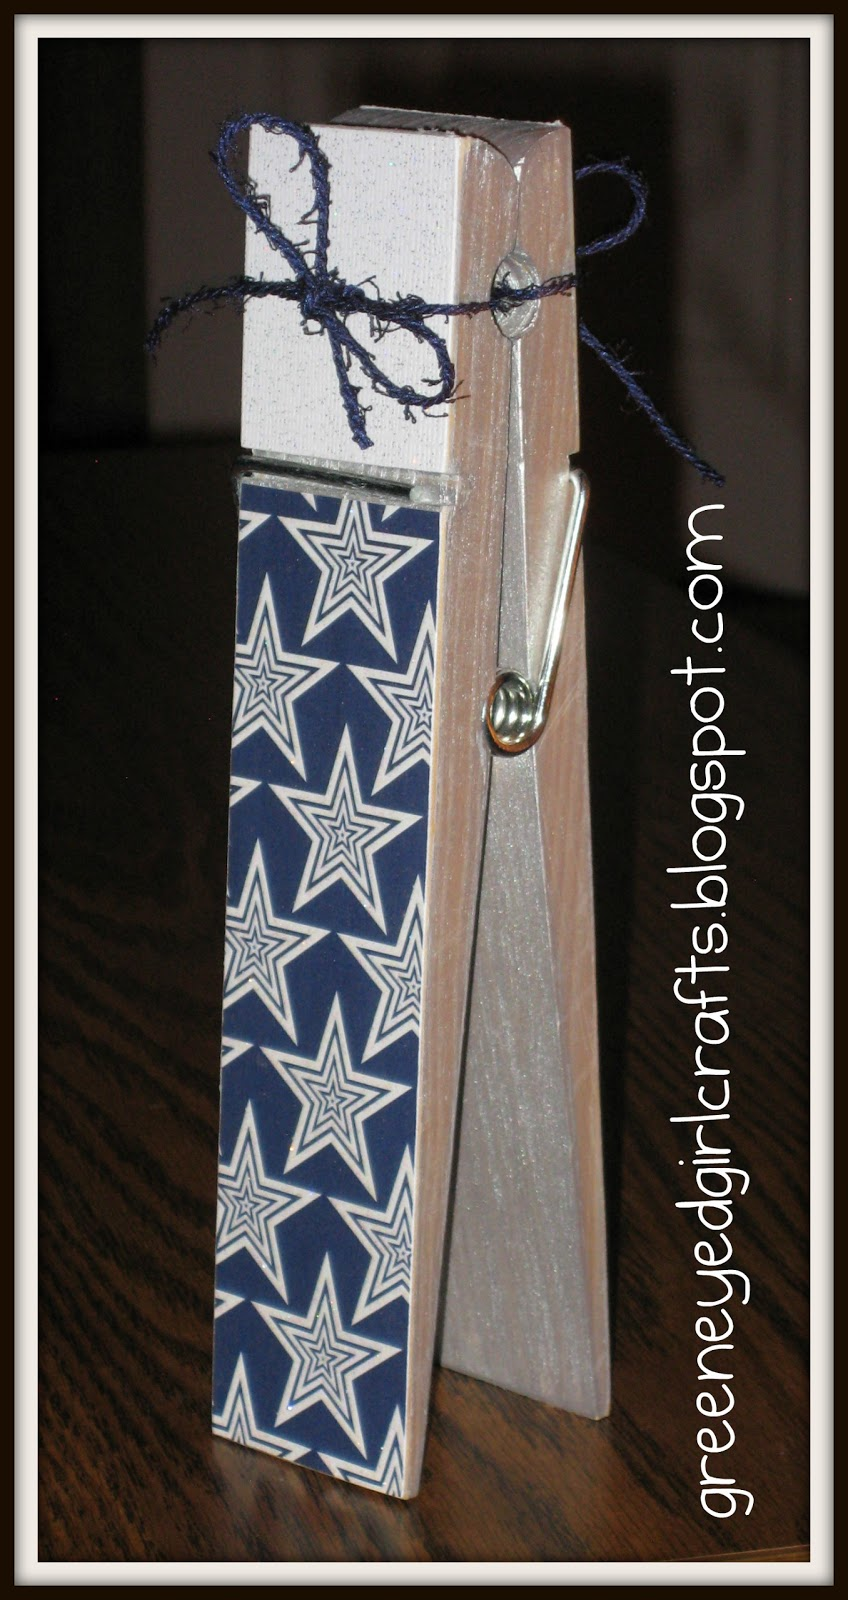 Green eyed girl crafts dallas cowboy clothes pins for Dallas cowboys arts and crafts